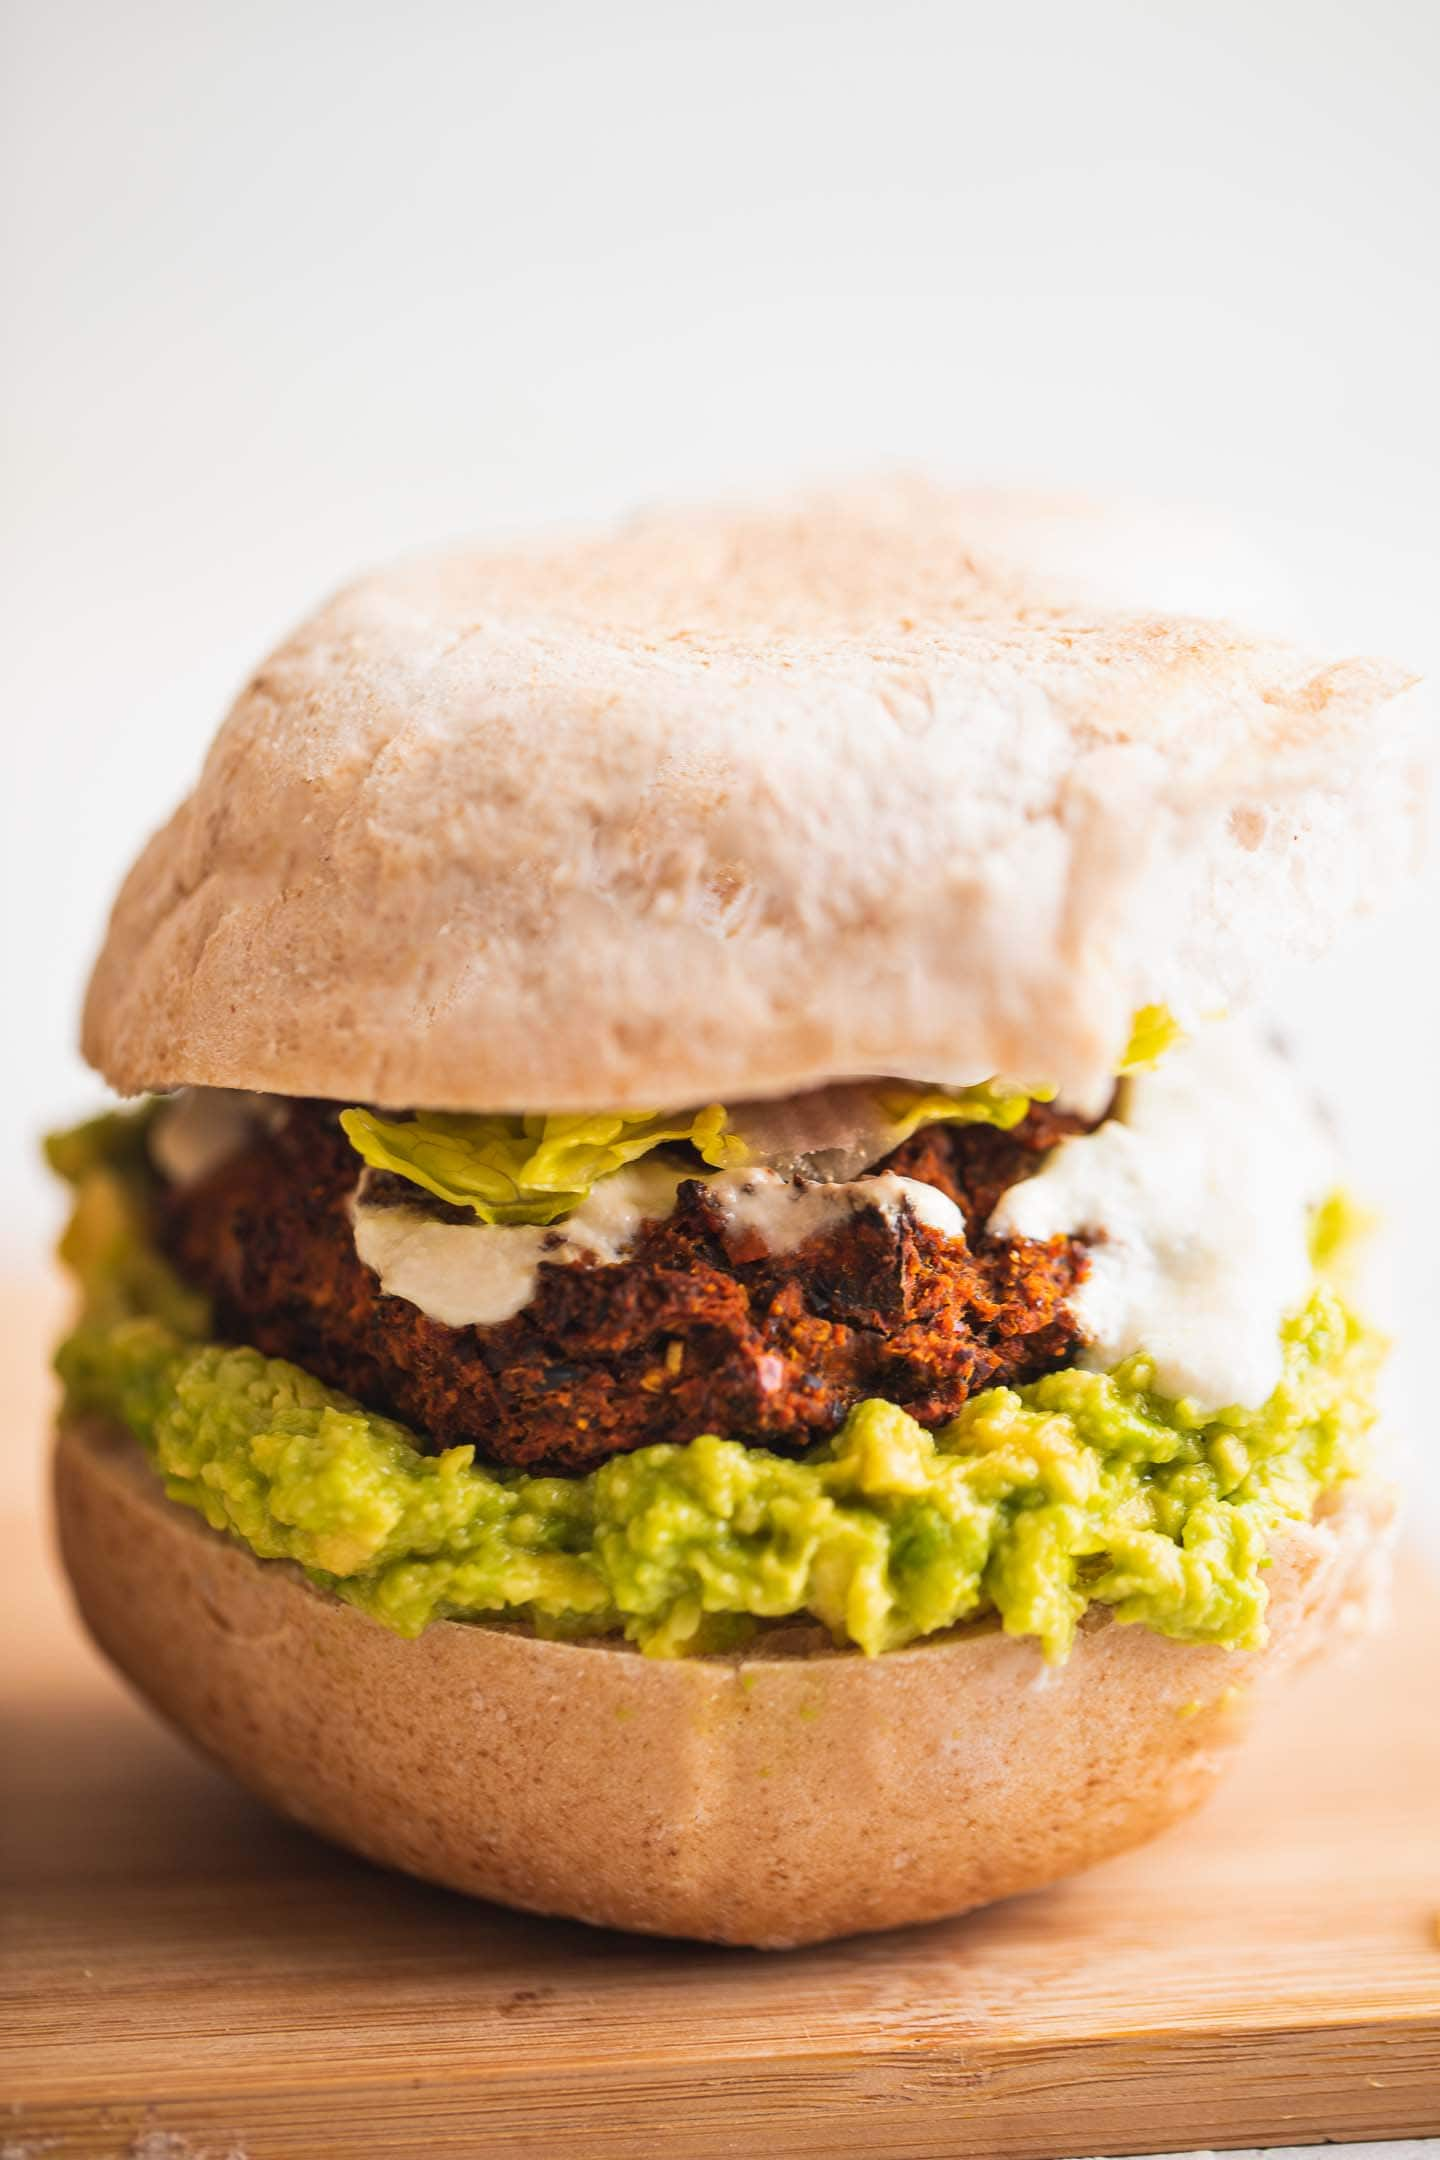 Vegan burger with avocado and vegetables